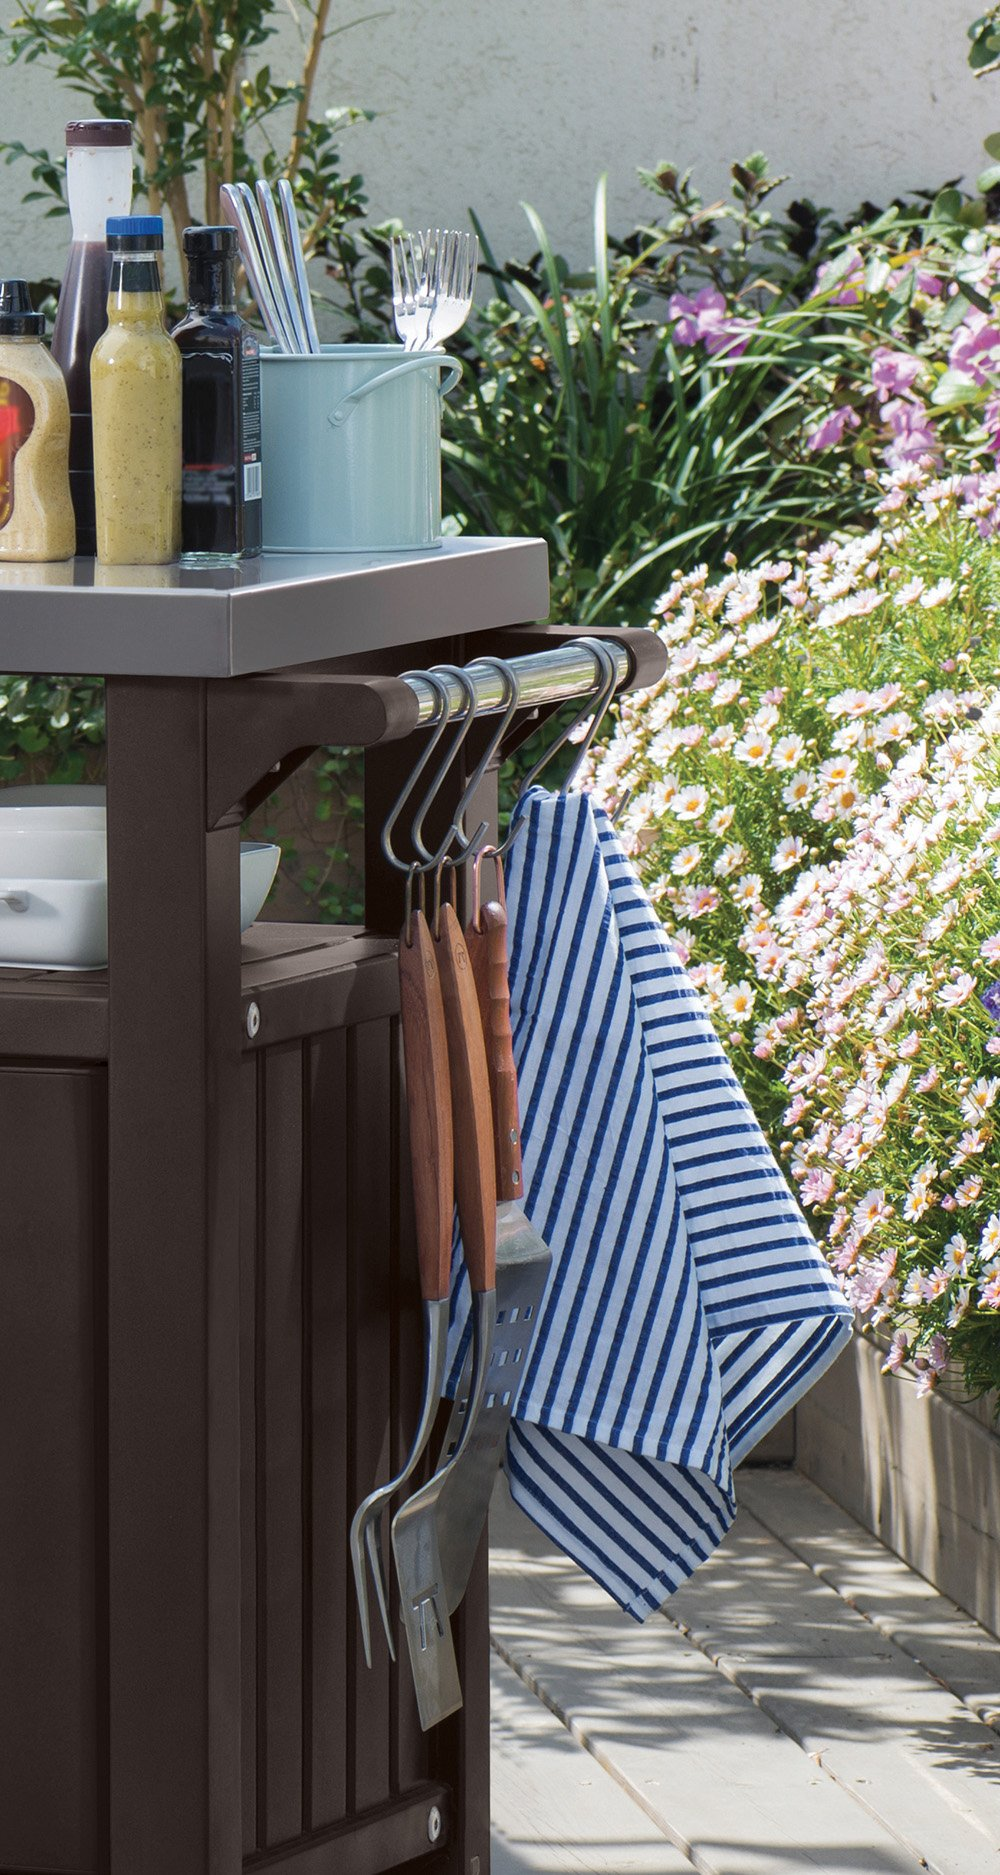 Outdoor Prep Station Serving BBQ Grilling Patio Deck Cabinet Backyard Table by Keter Products (Image #8)